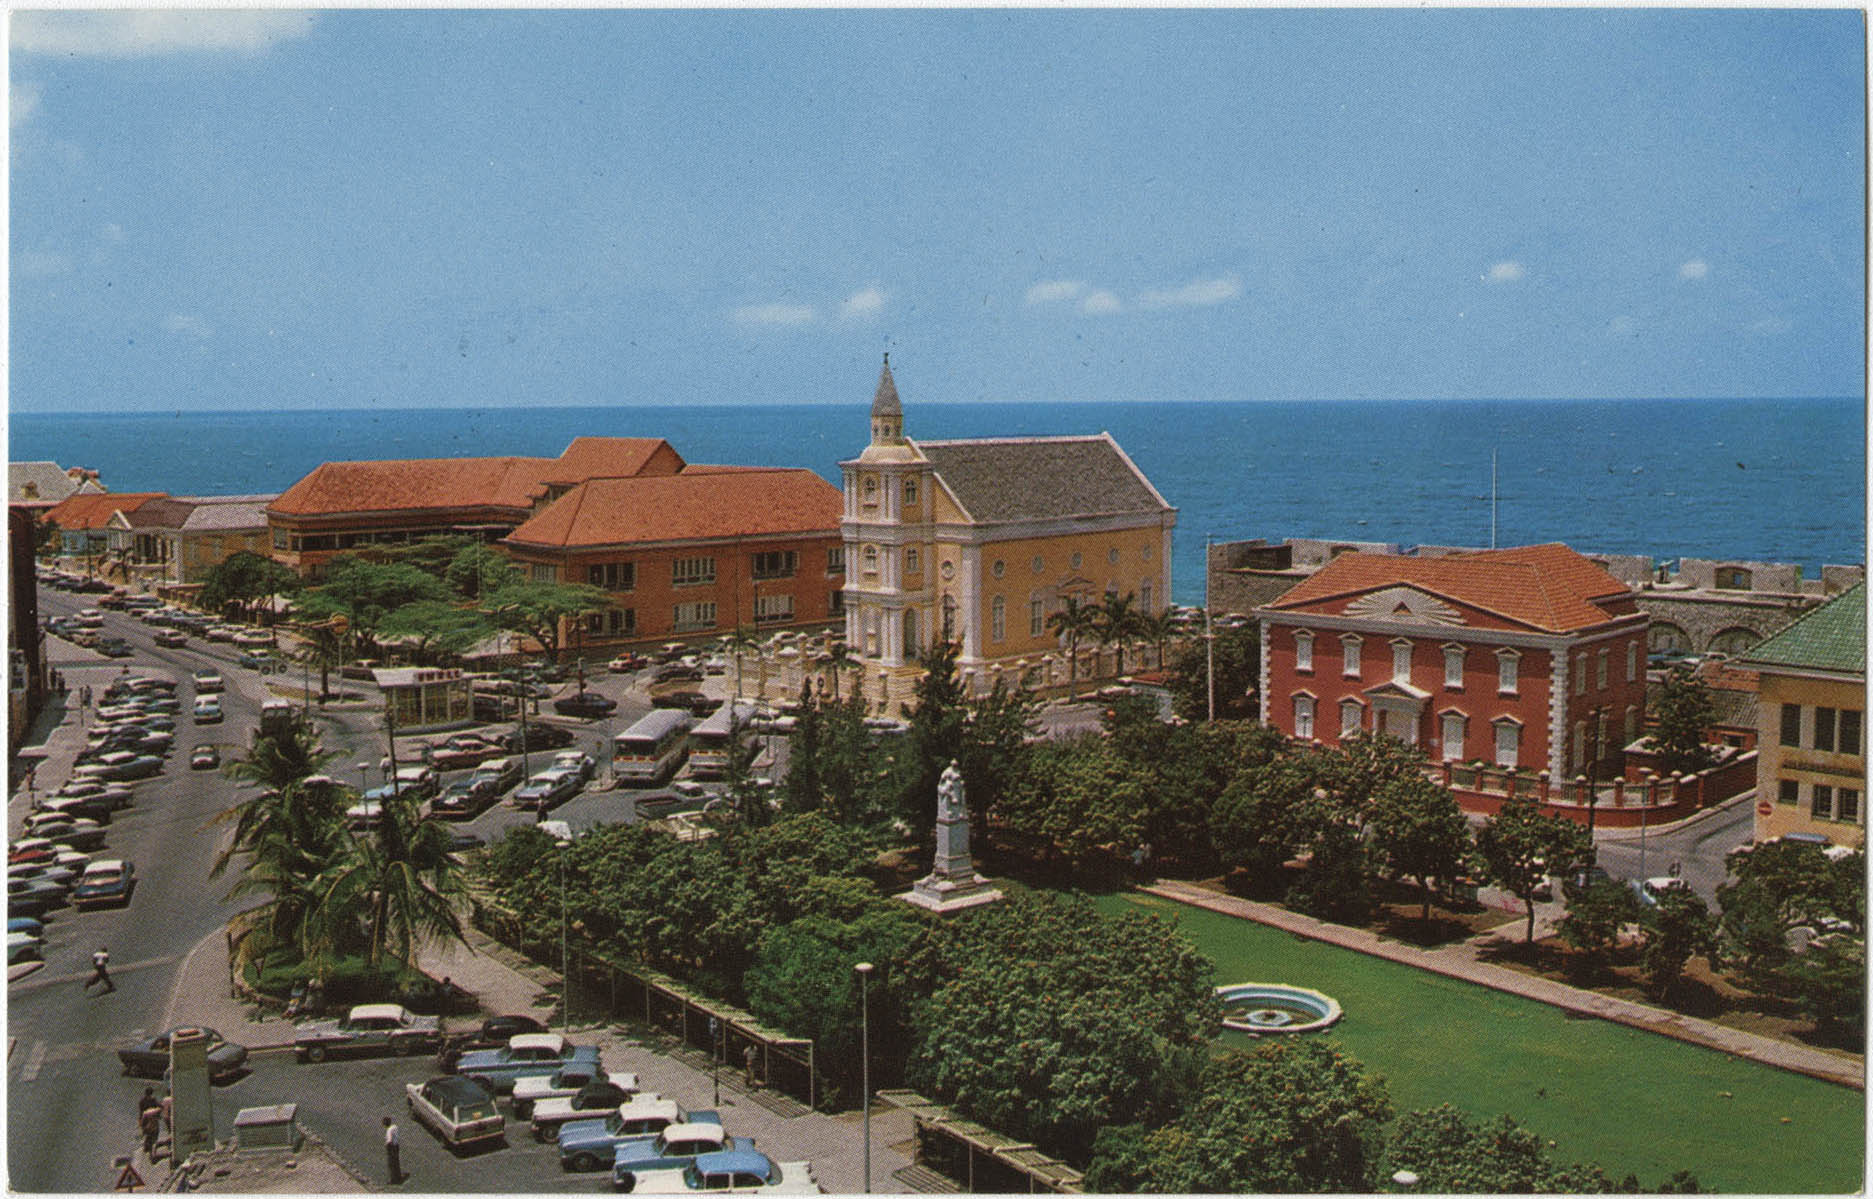 Curacao, Netherlands Antilles. Bird's eye view of Wilhelmina Park with statue of the late Queen Wilhelmina of the Netherlands and 100-year-old Jewish Reform Temple Emanuel in background.